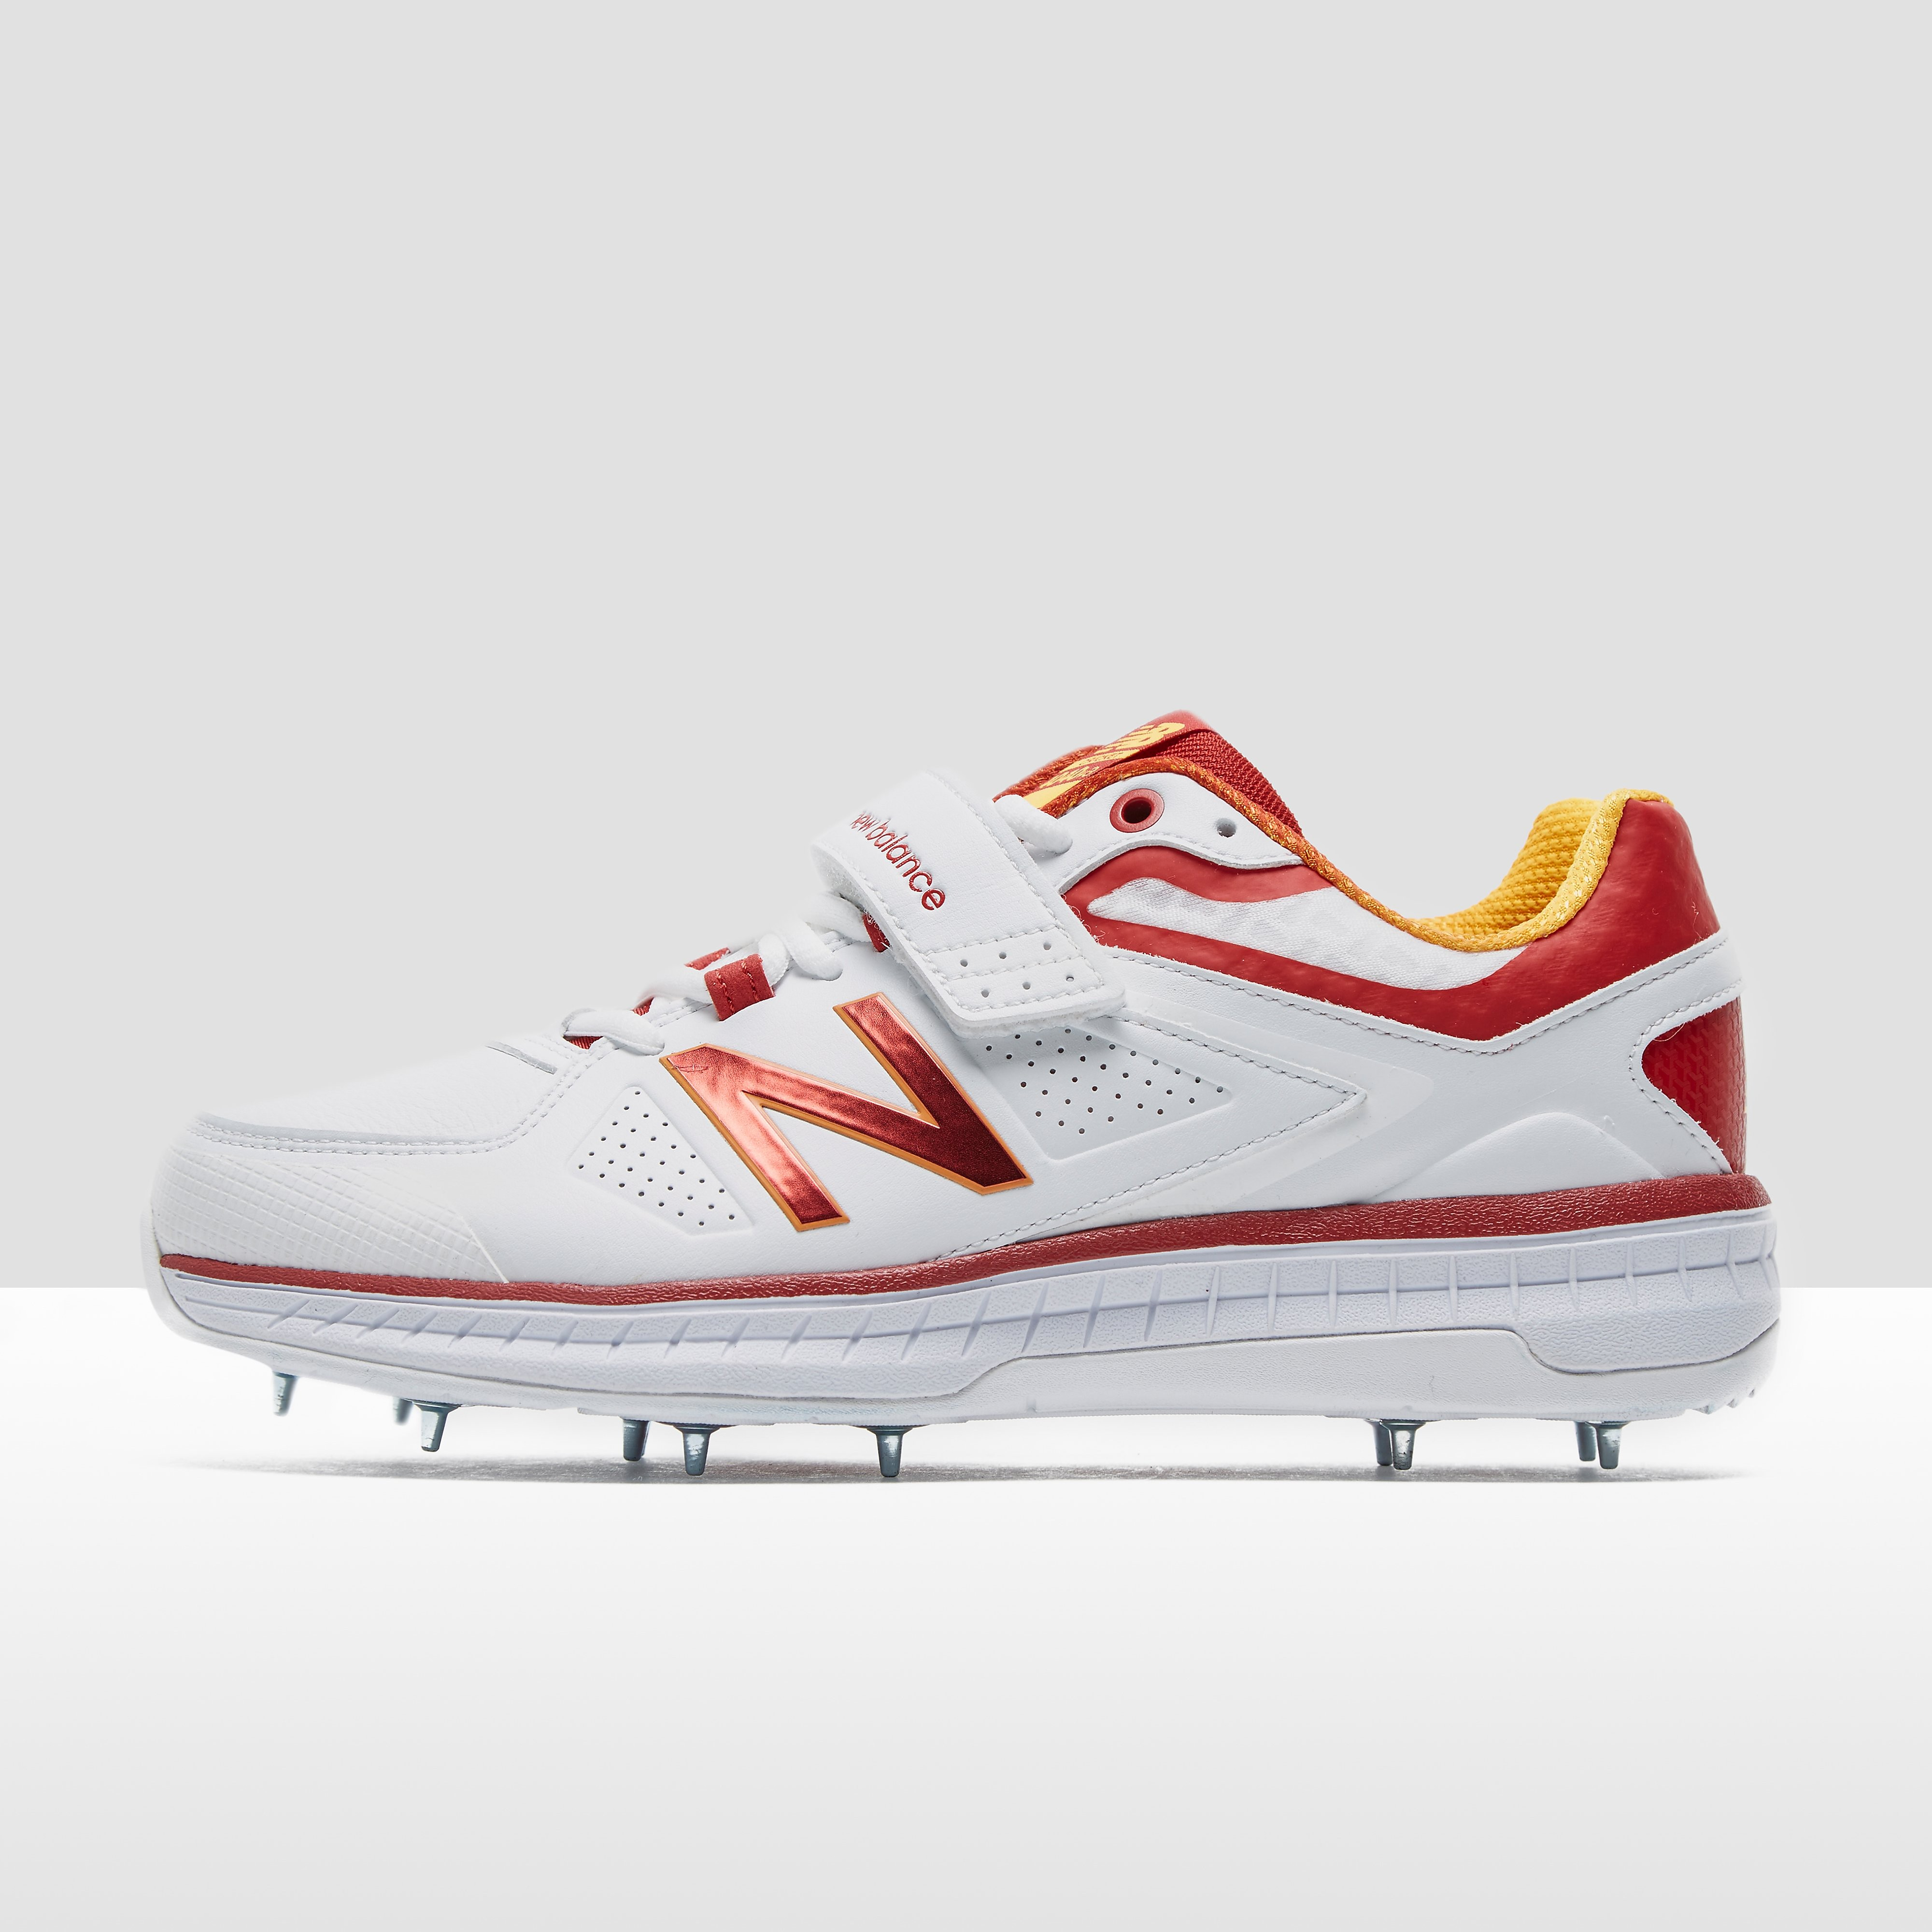 New Balance Men's CK 40/40 R3 Cricket Shoes